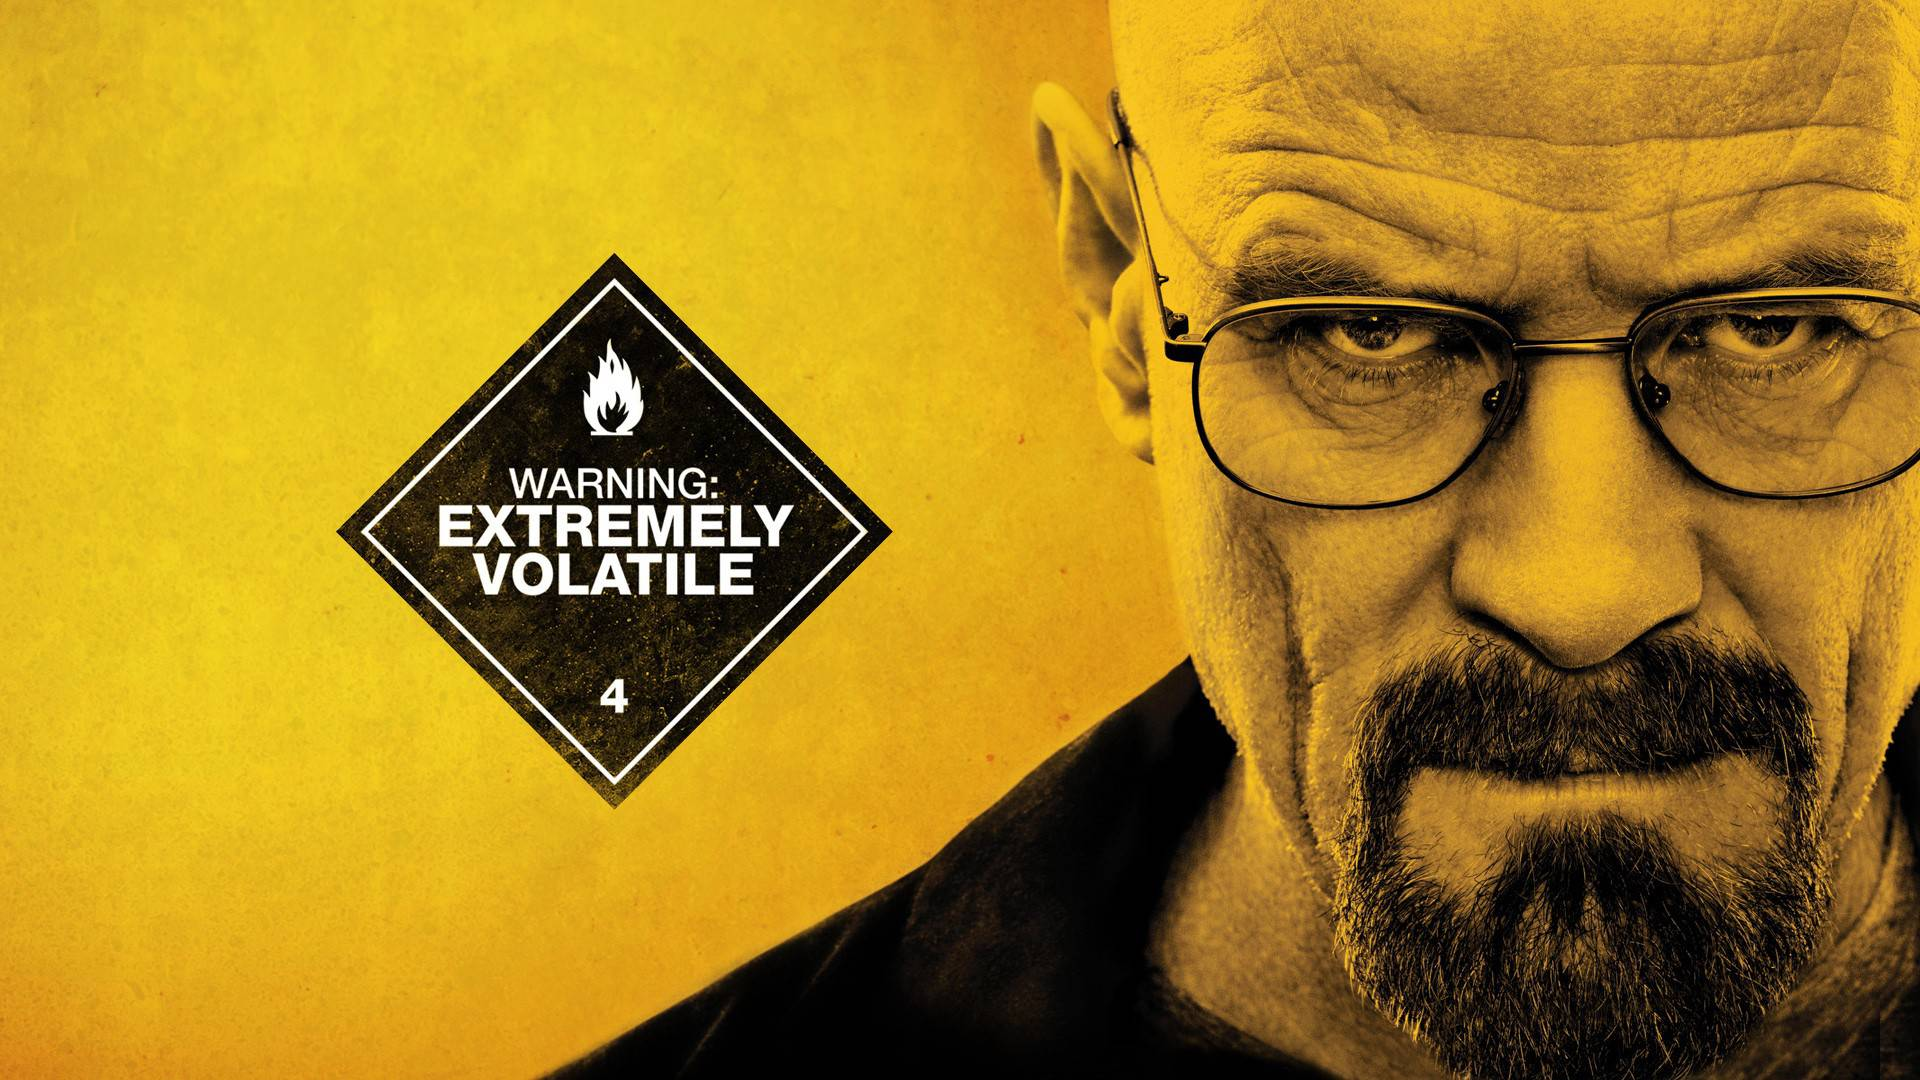 Breaking bad bryan cranston walter white wallpaper HQ WALLPAPER - (#3544)